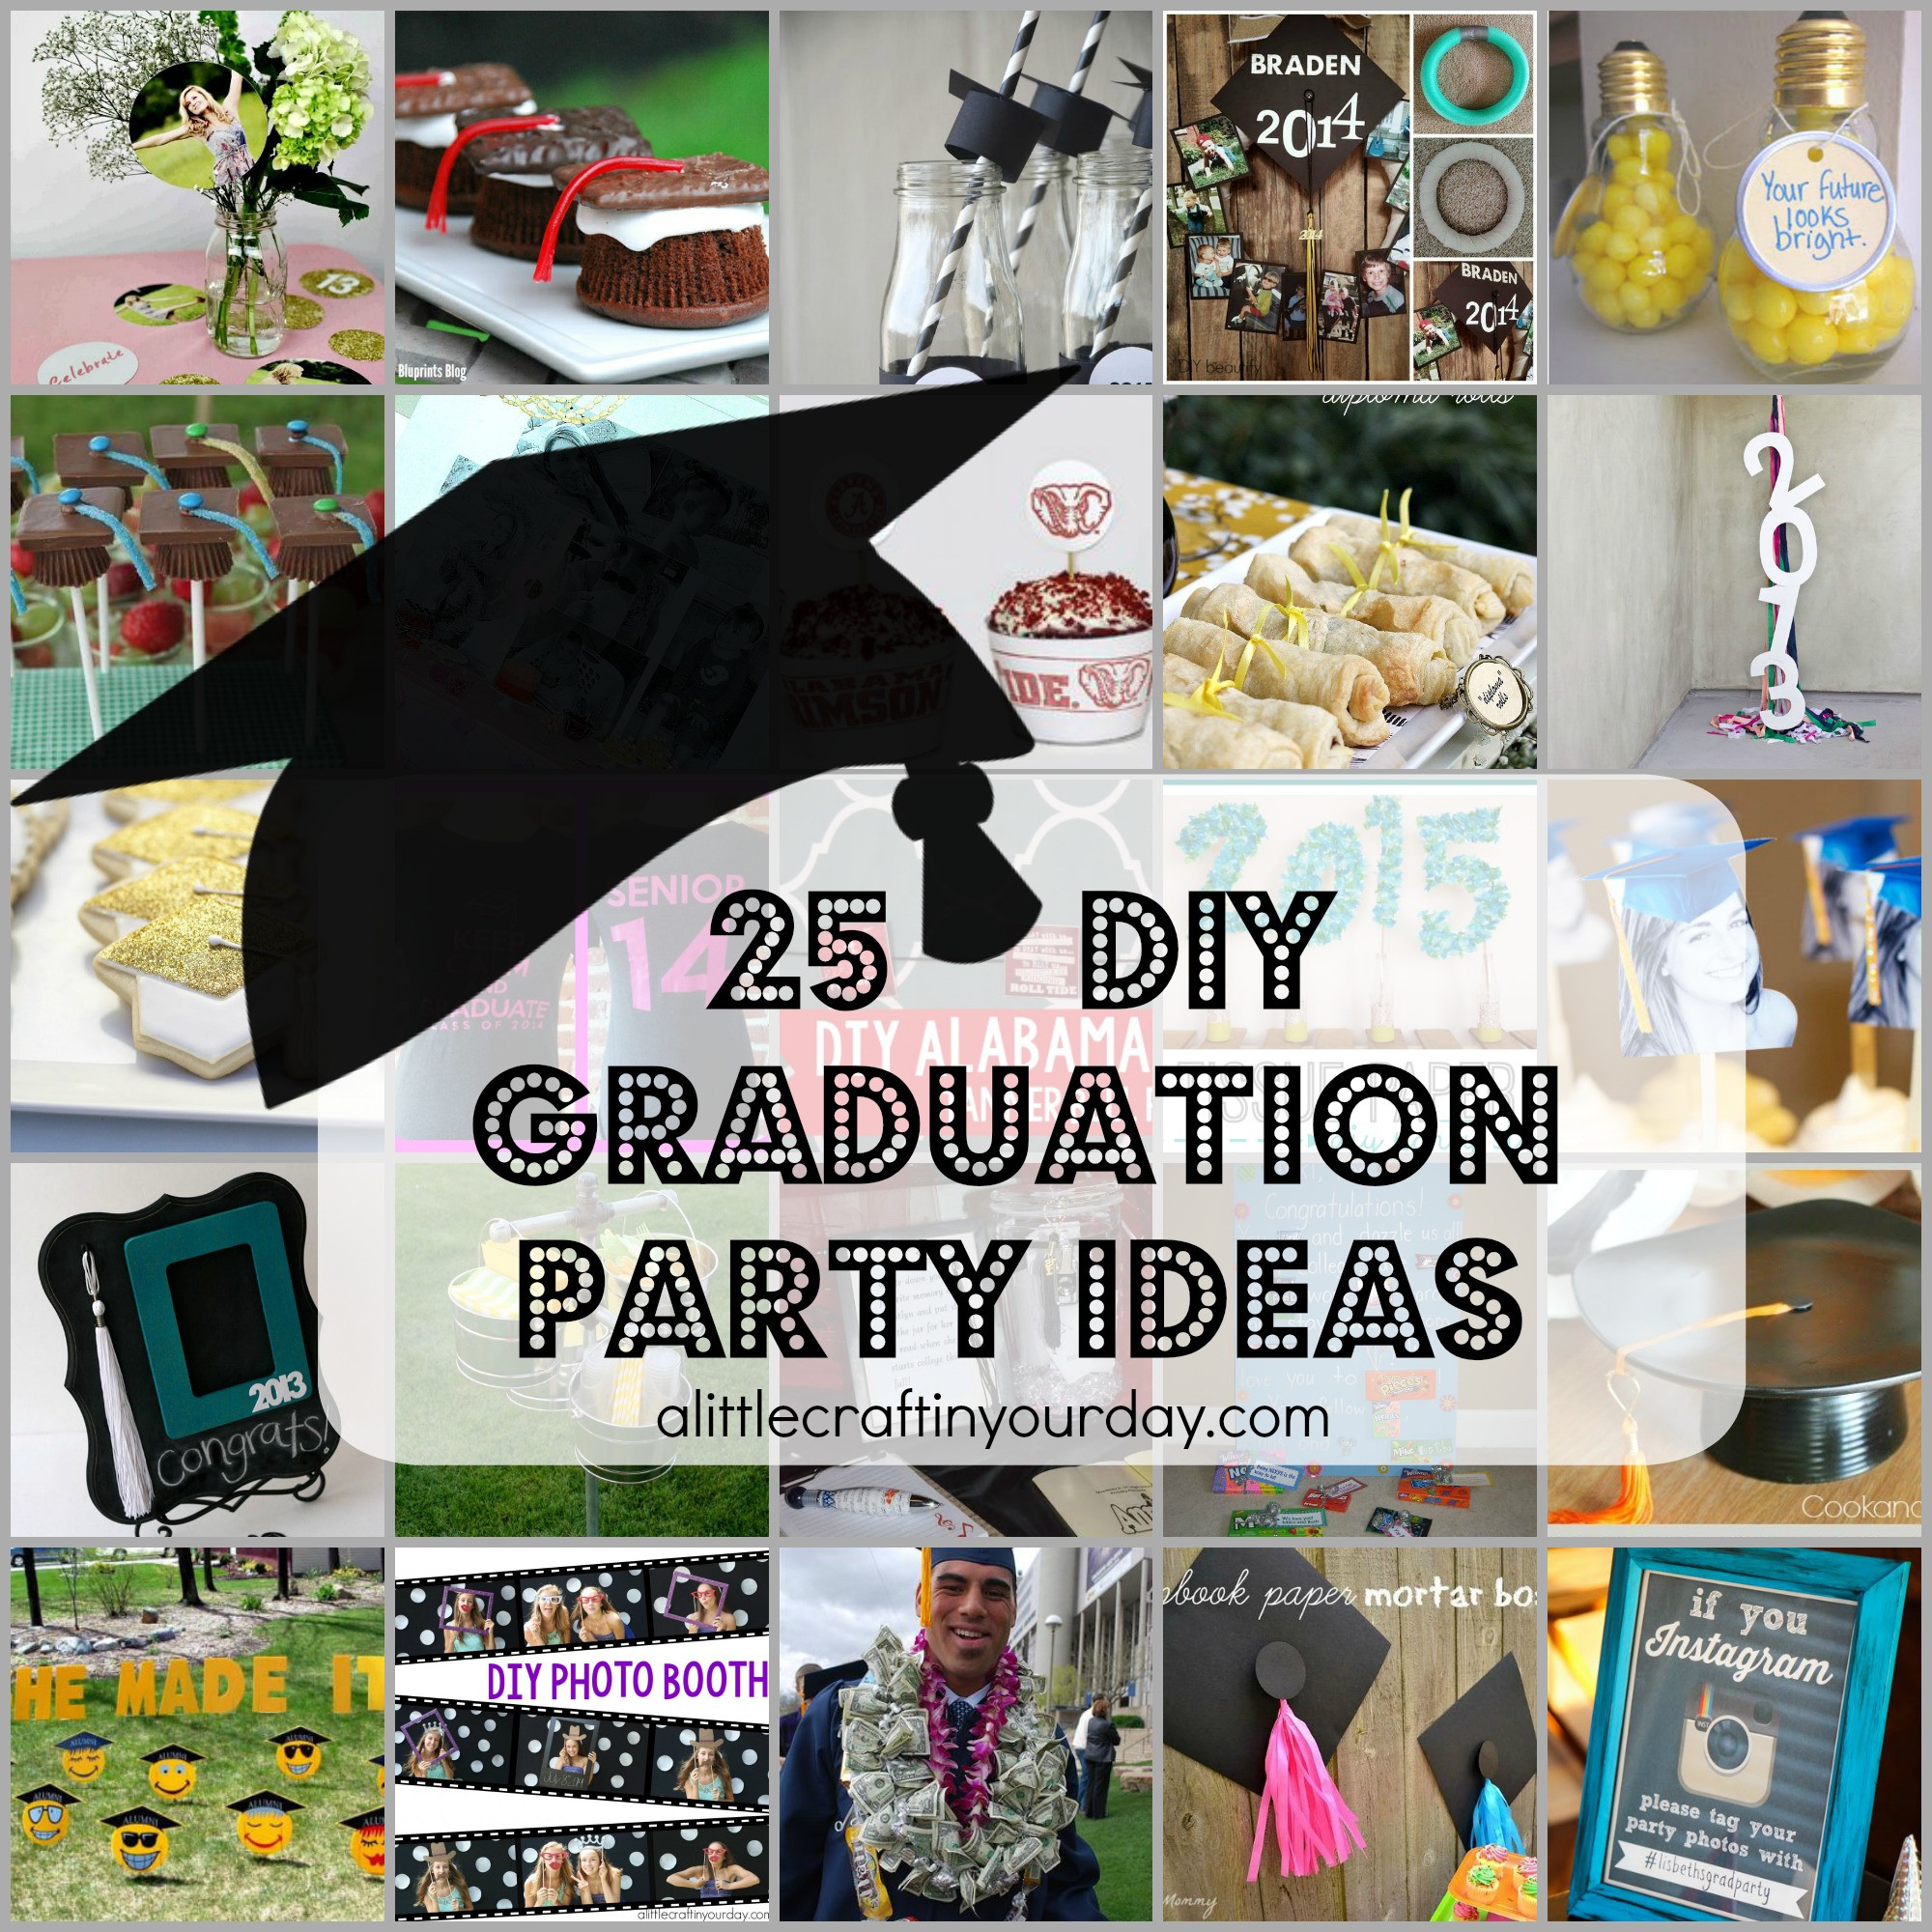 Graduation Dinner Party Ideas  25 DIY Graduation Party Ideas A Little Craft In Your Day